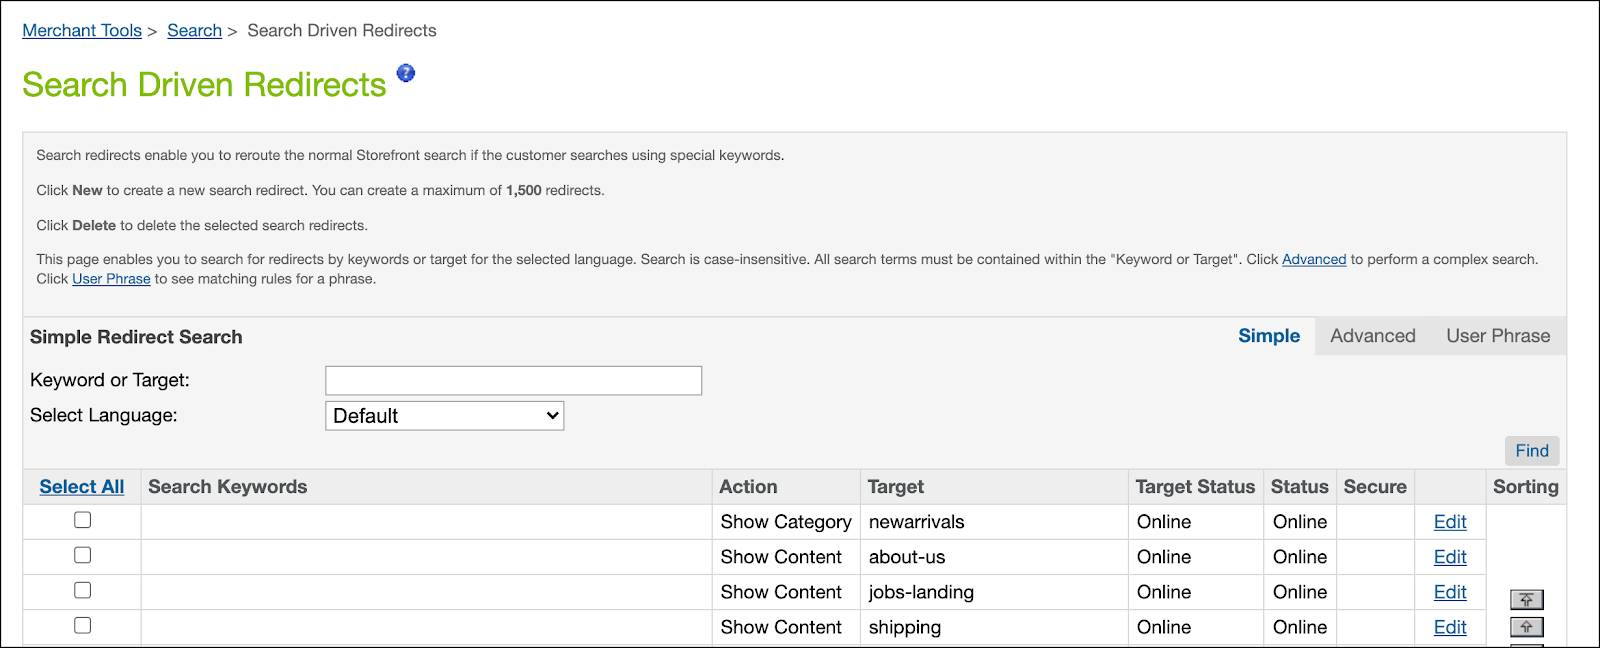 In Business Manager, create and edit search-driven redirects.